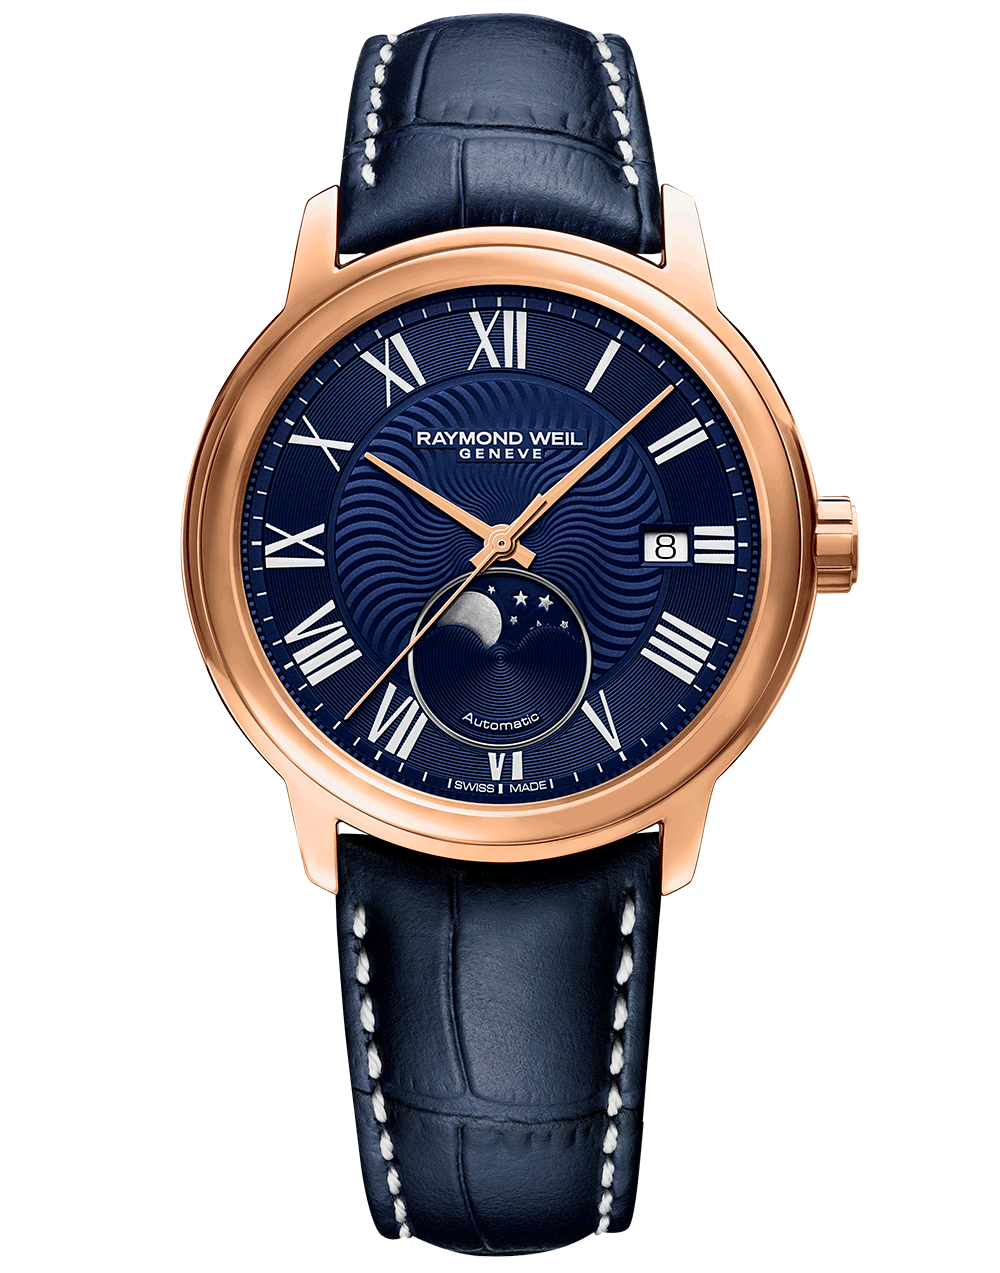 RAYMOND WEIL maestro moonphase blue dial rose tone leather watch